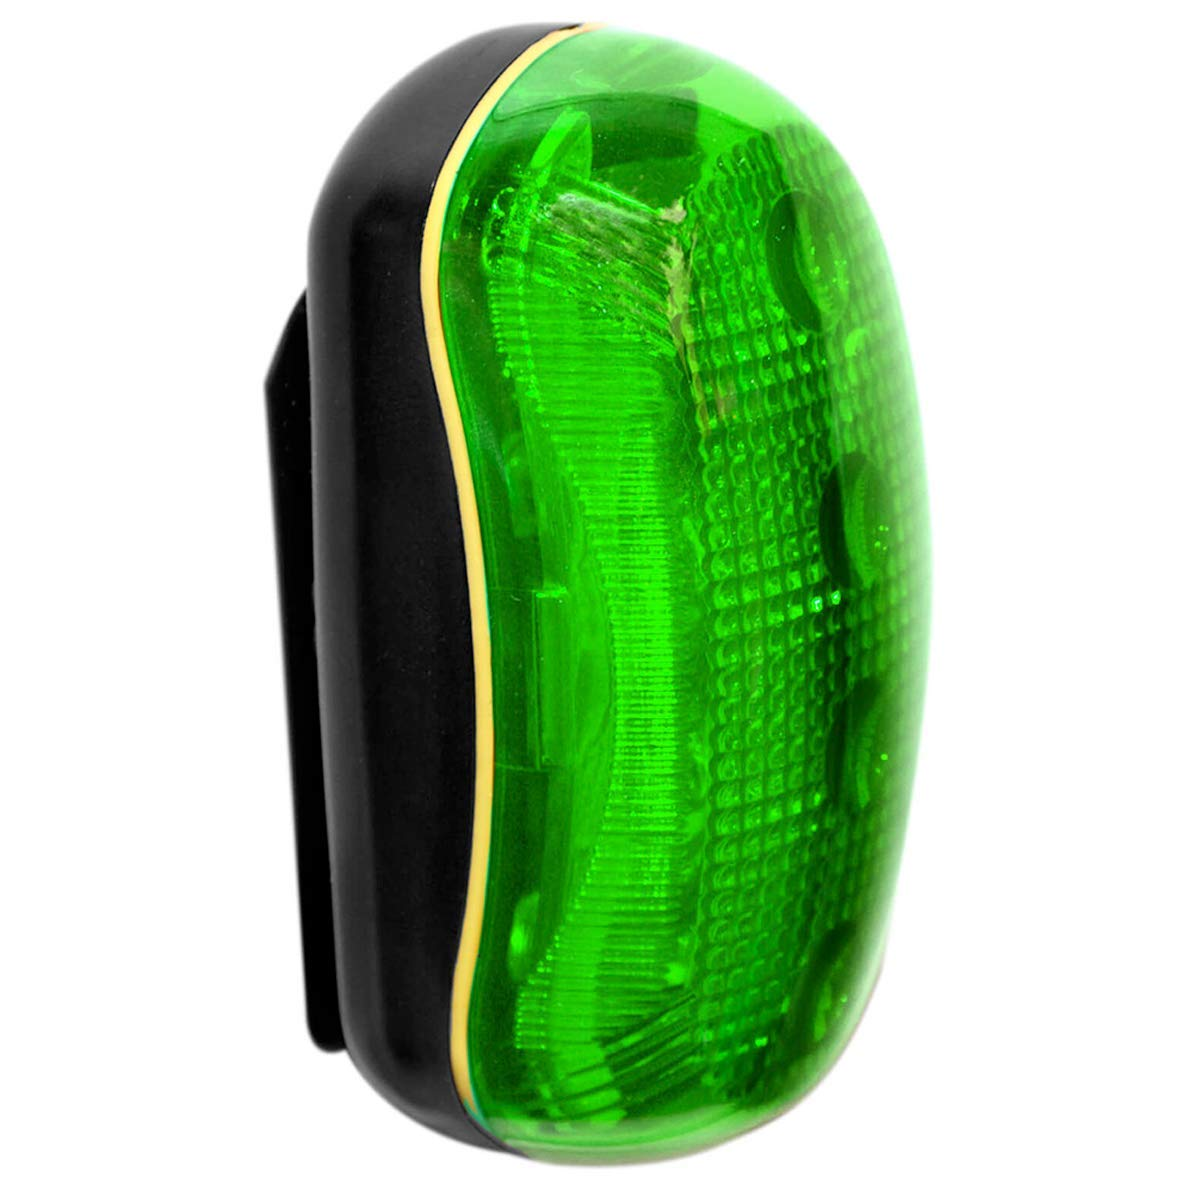 3 Operational Modes 1.6oz Green 4 Bright LEDs Foxfire Safety Lites SL34-G Personal Safety Lite for Nighttime Visibility